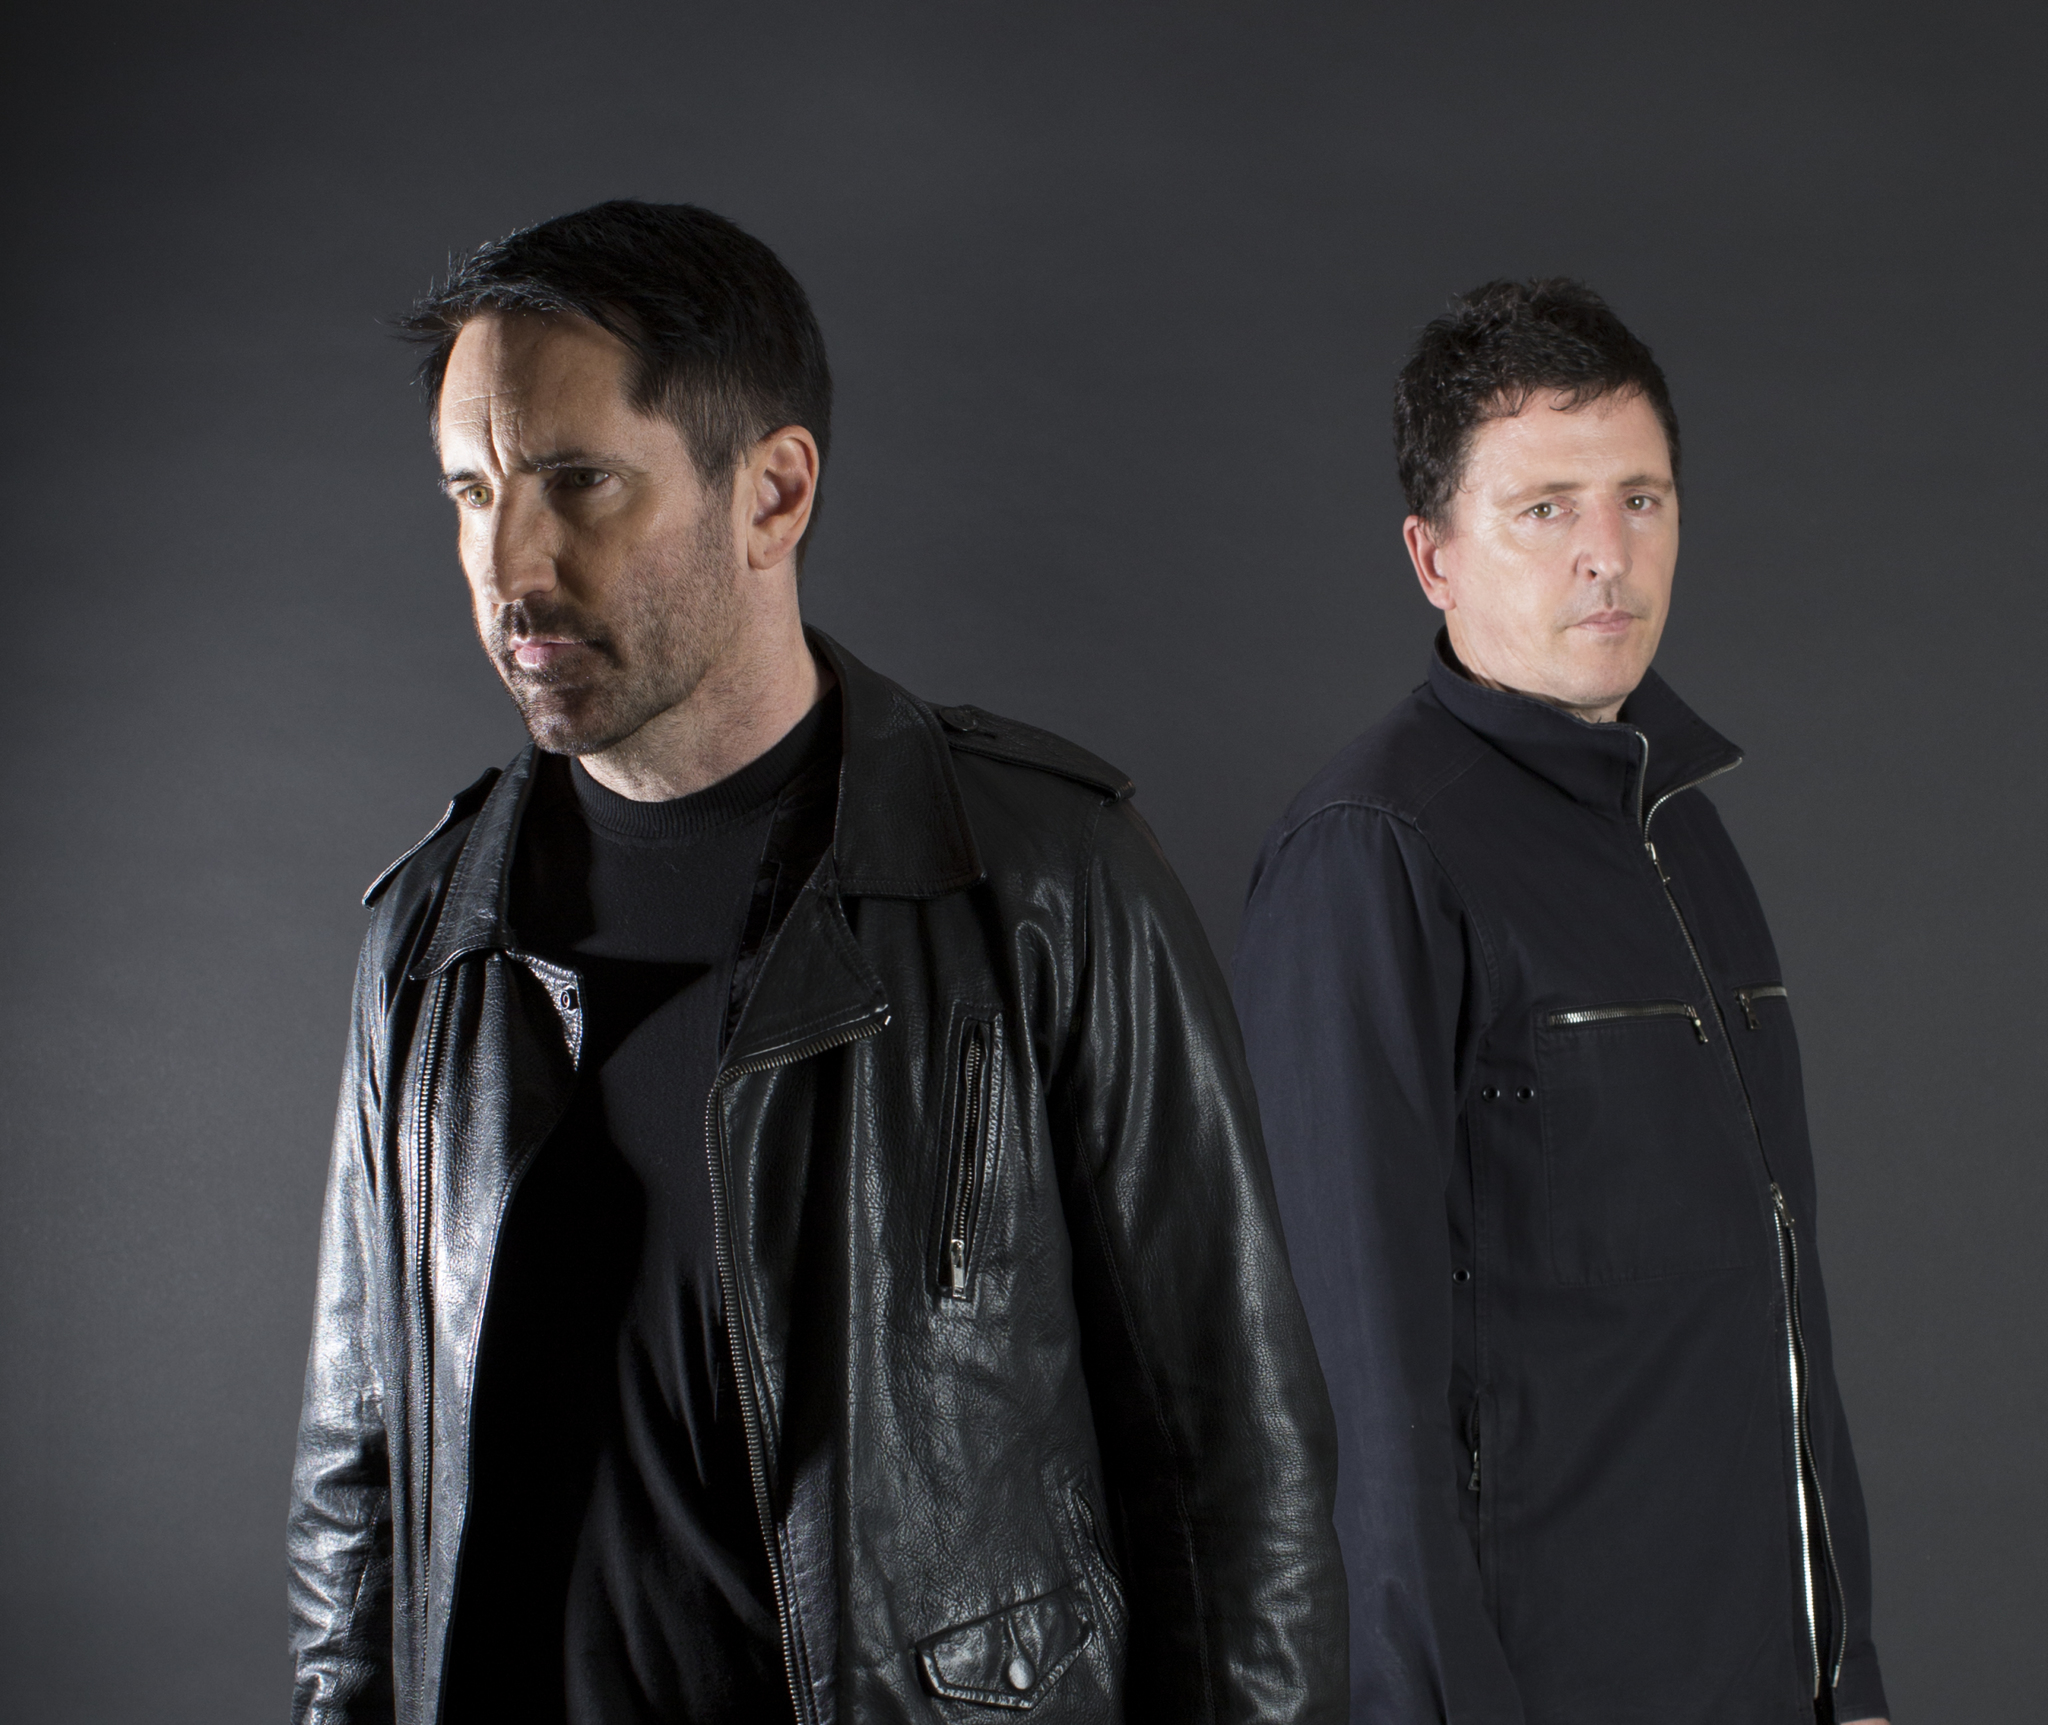 Trent Reznor and Atticus Ross on Scoring 'Watchmen,' David Fincher, and Their Upcoming Pixar Film - Awards Daily